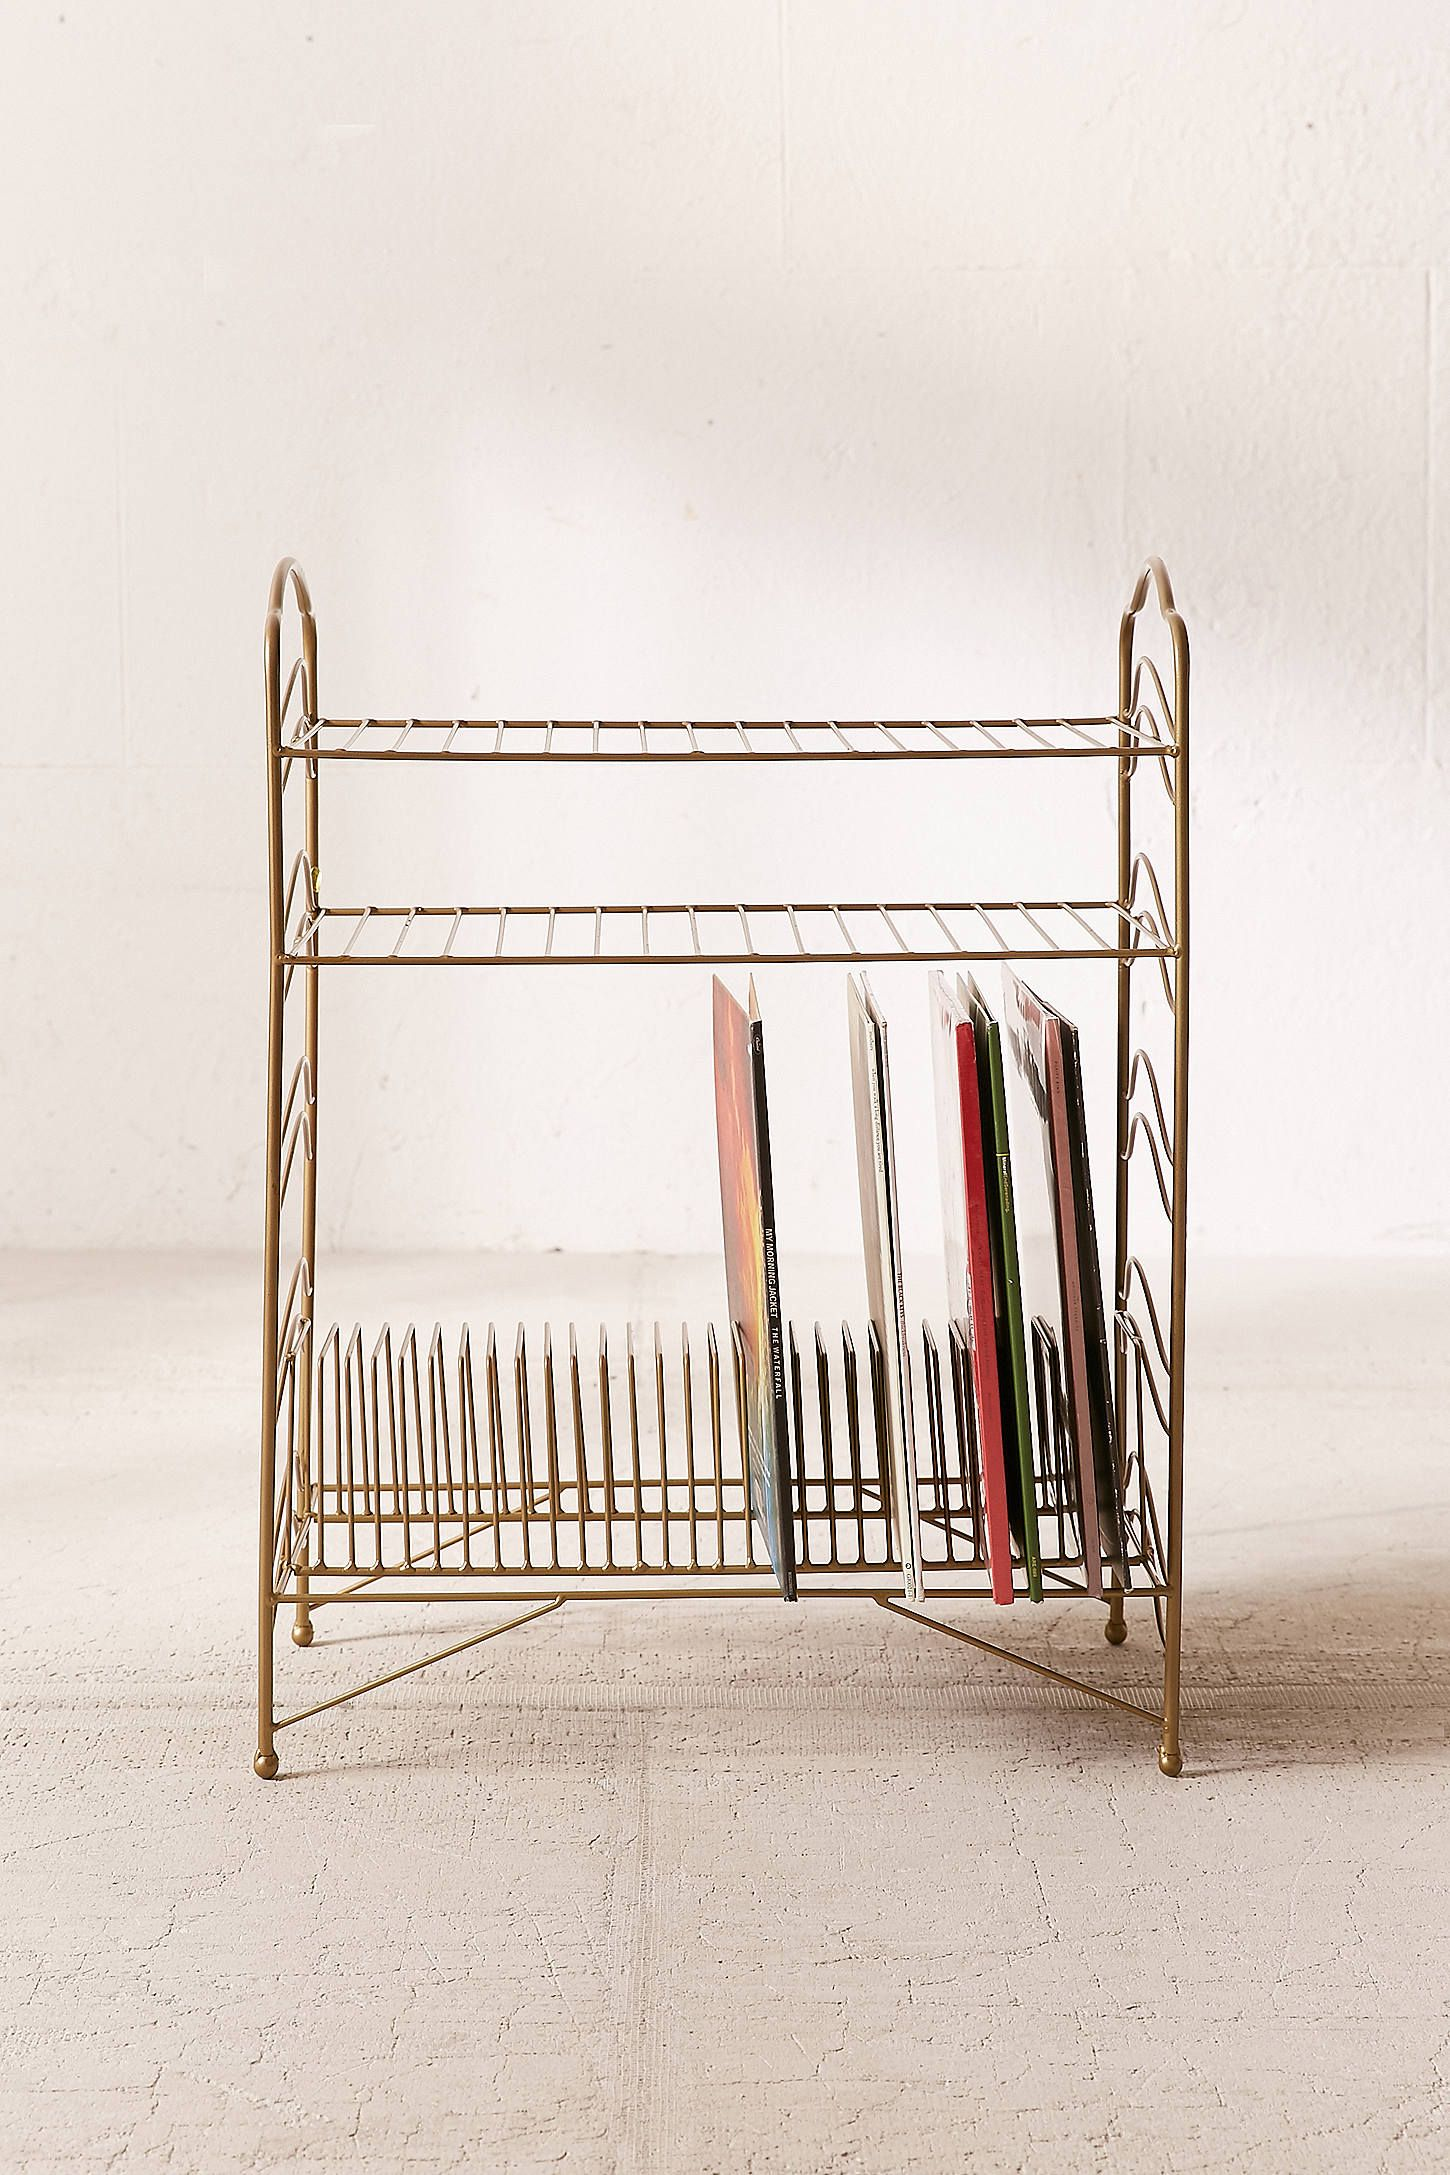 outfittersblack urban vinyl galery shelf lovequilts rack record storage wire